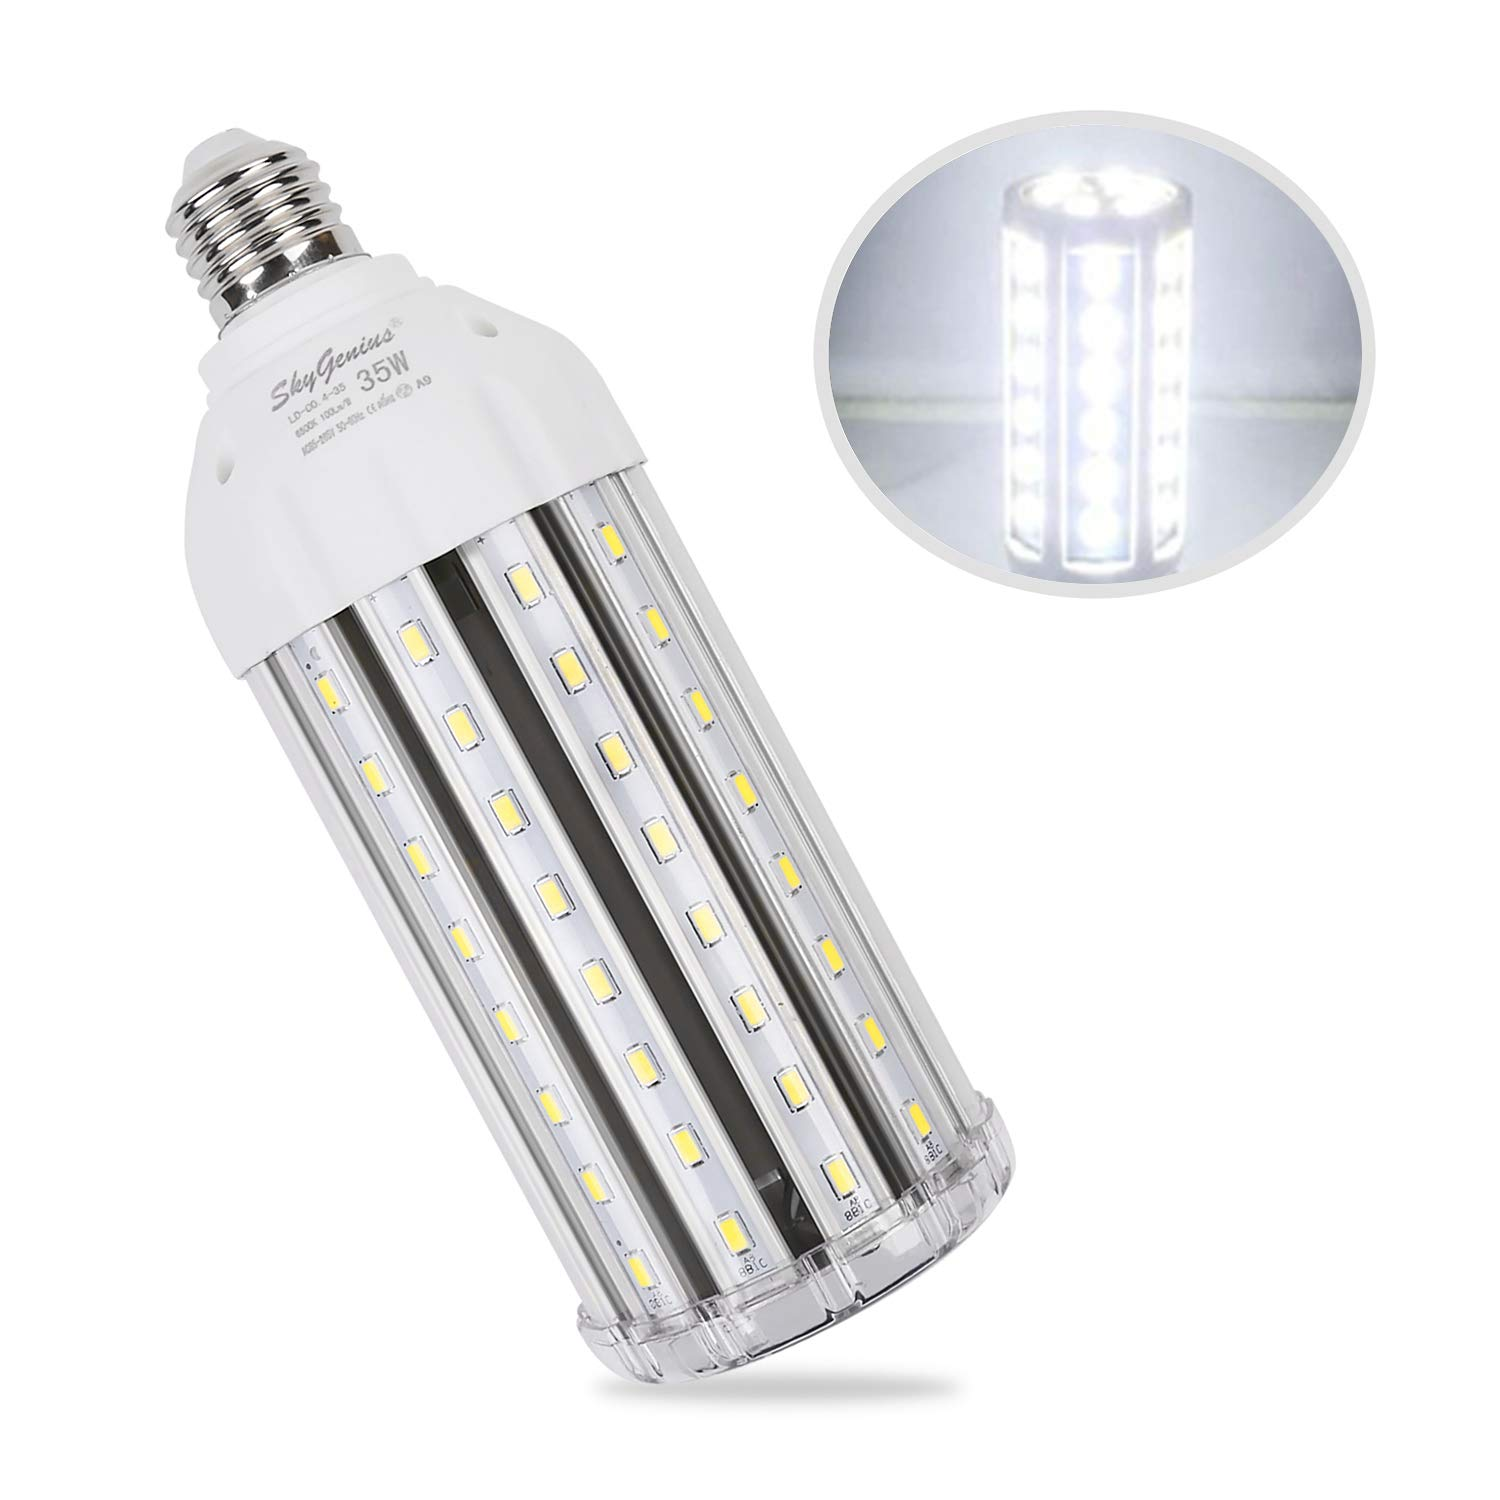 35W Daylight LED Corn Light Bulb for Indoor Outdoor Large Area - E26 3500Lm 6500K Cool White,for Street Lamp Post Lighting Garage Factory Warehouse High Bay Barn Porch Backyard Garden Super Bright